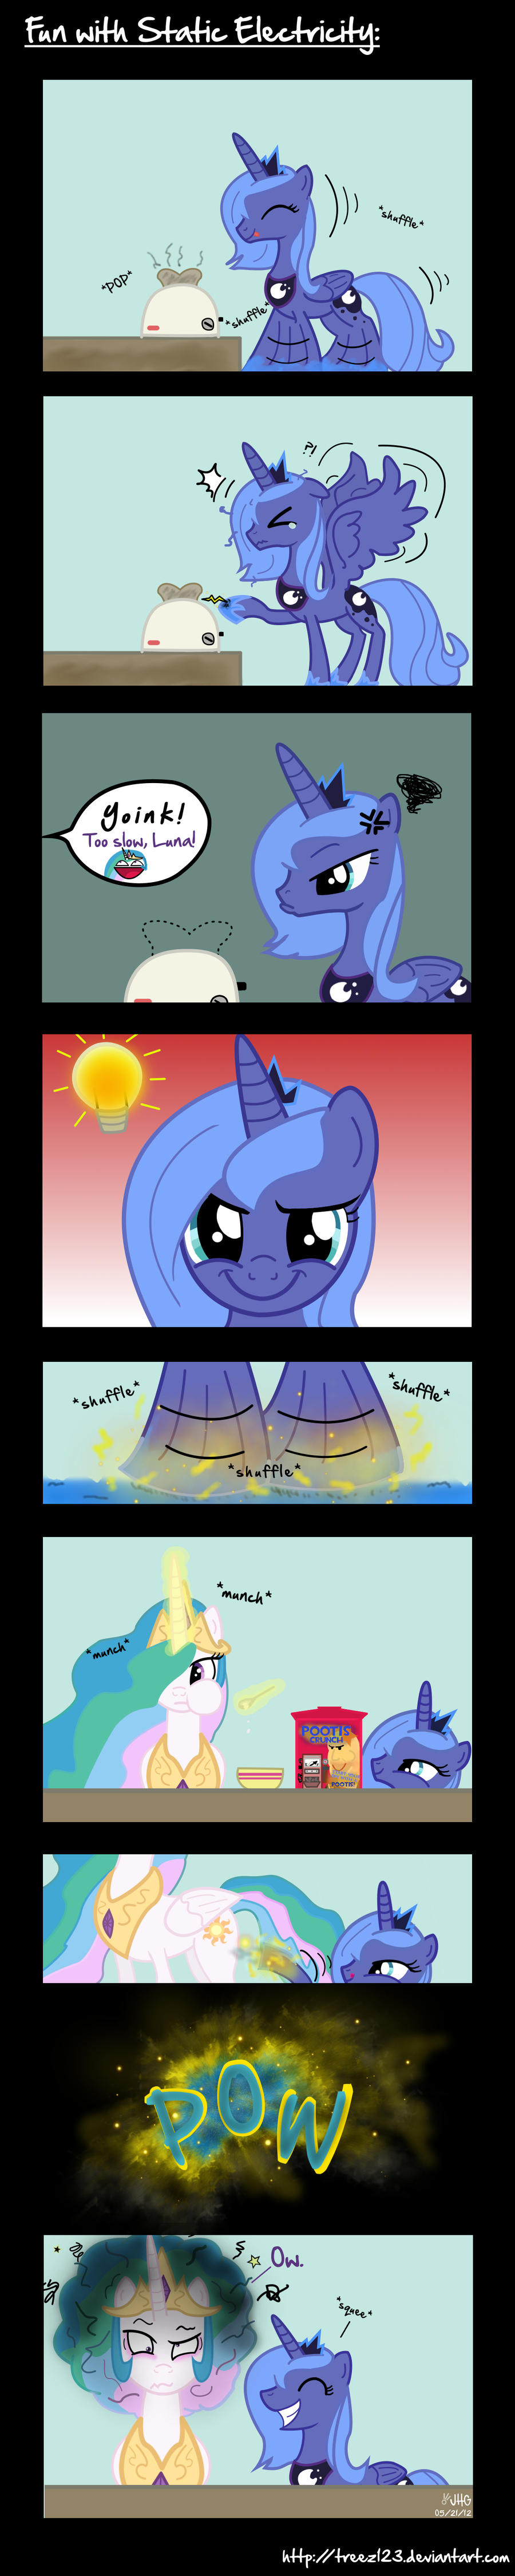 Fun with Static Electricity by treez123